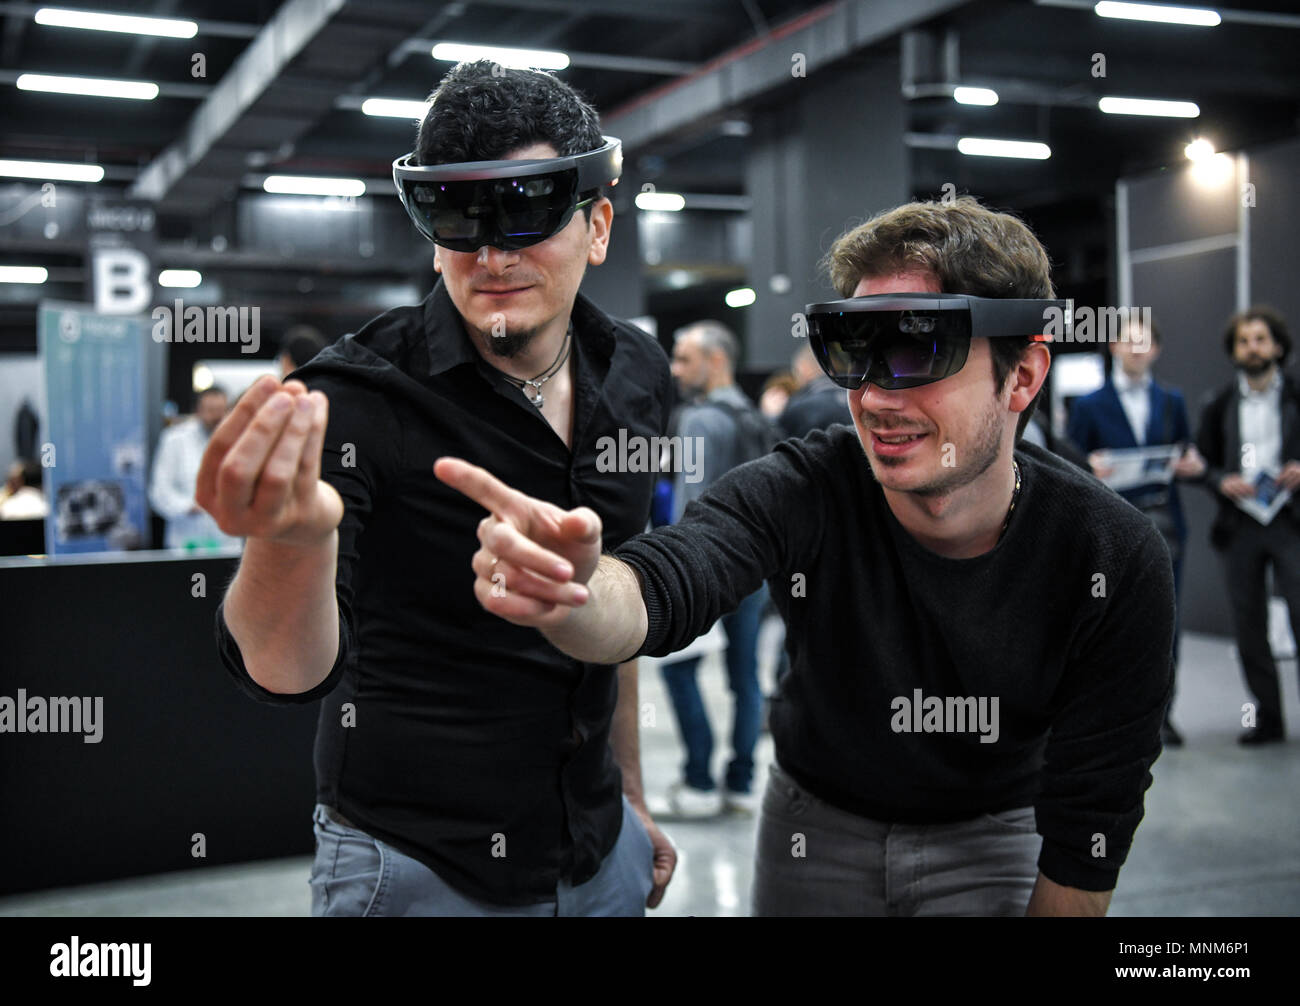 Milan, Italy - 17 May 2018: Two young men wearing VR Virtual Reality headsets gesticulate and interact together  during the Technology Hub 2018. - Stock Image